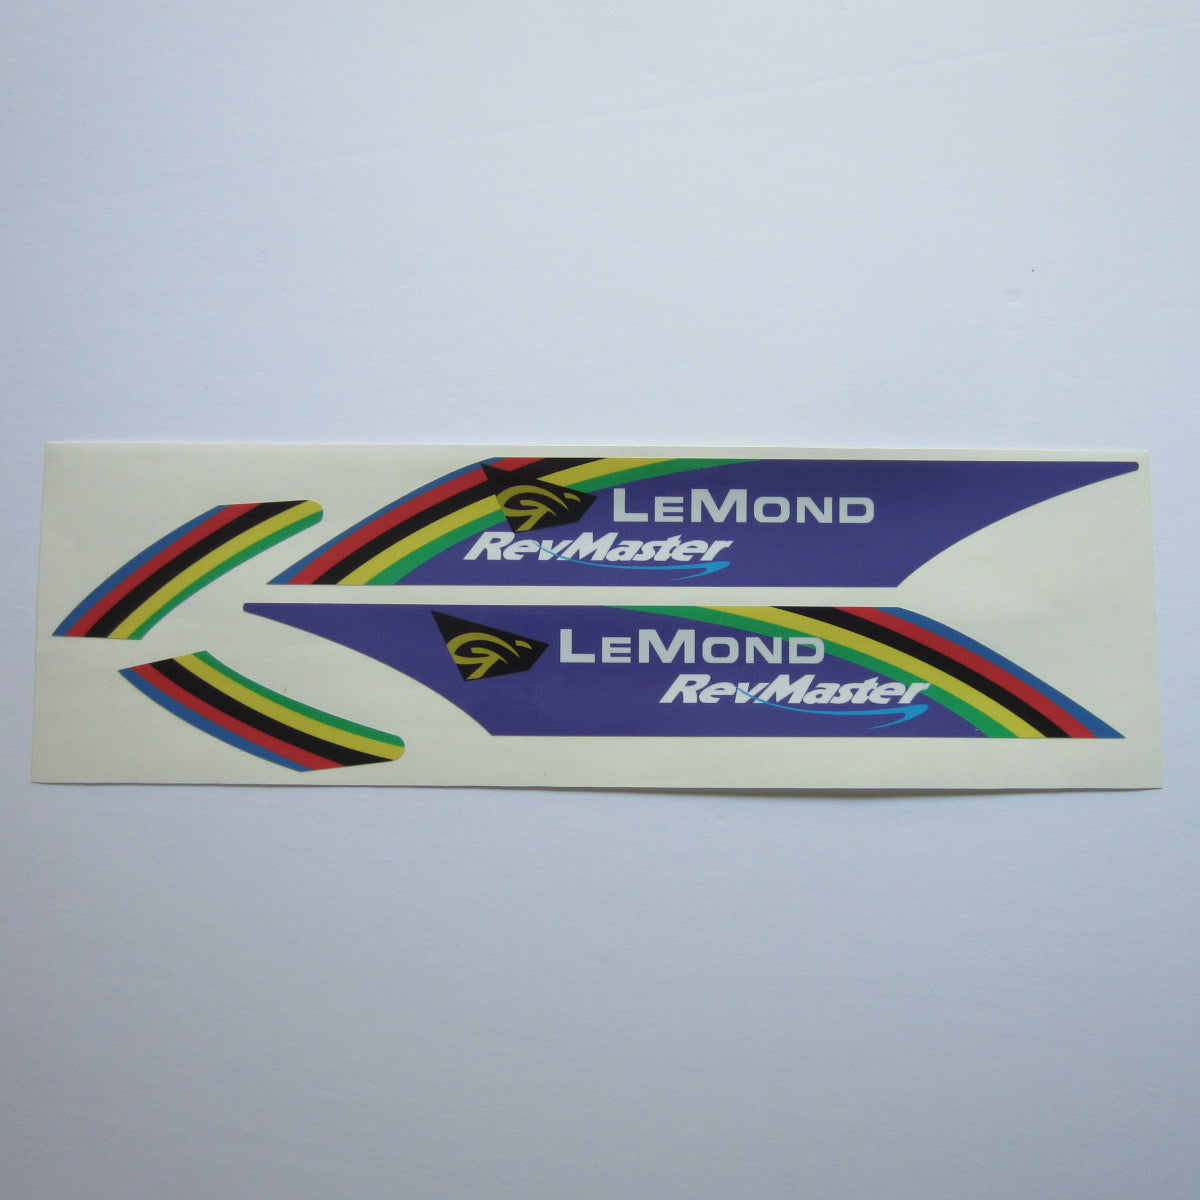 LeMond RevMaster Decal Set (4 pcs)